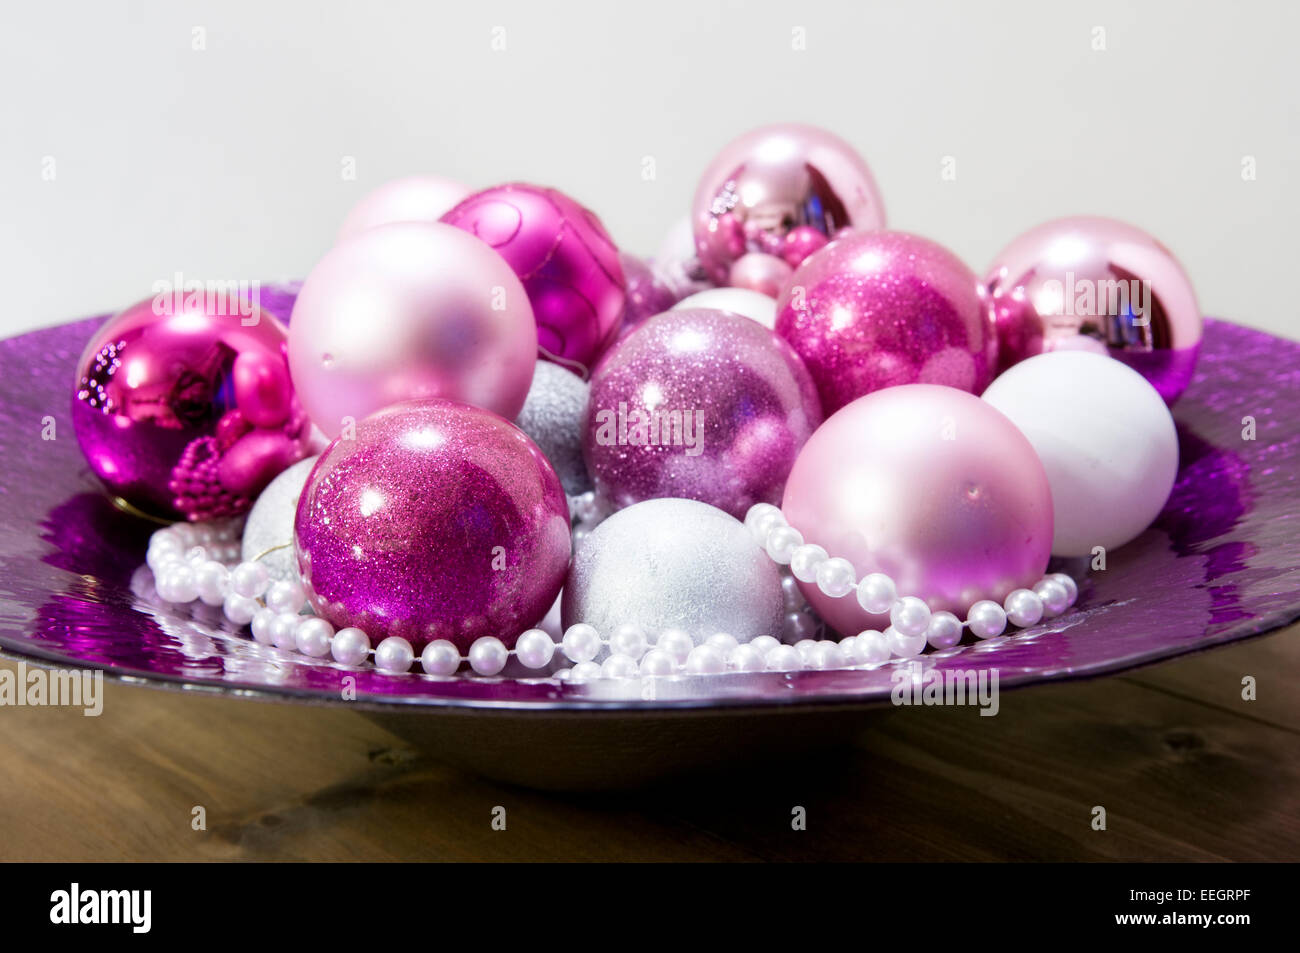 Pink purple christmas baubles close stockfotos pink purple christmas baubles close bilder alamy - Christbaumkugeln lila ...